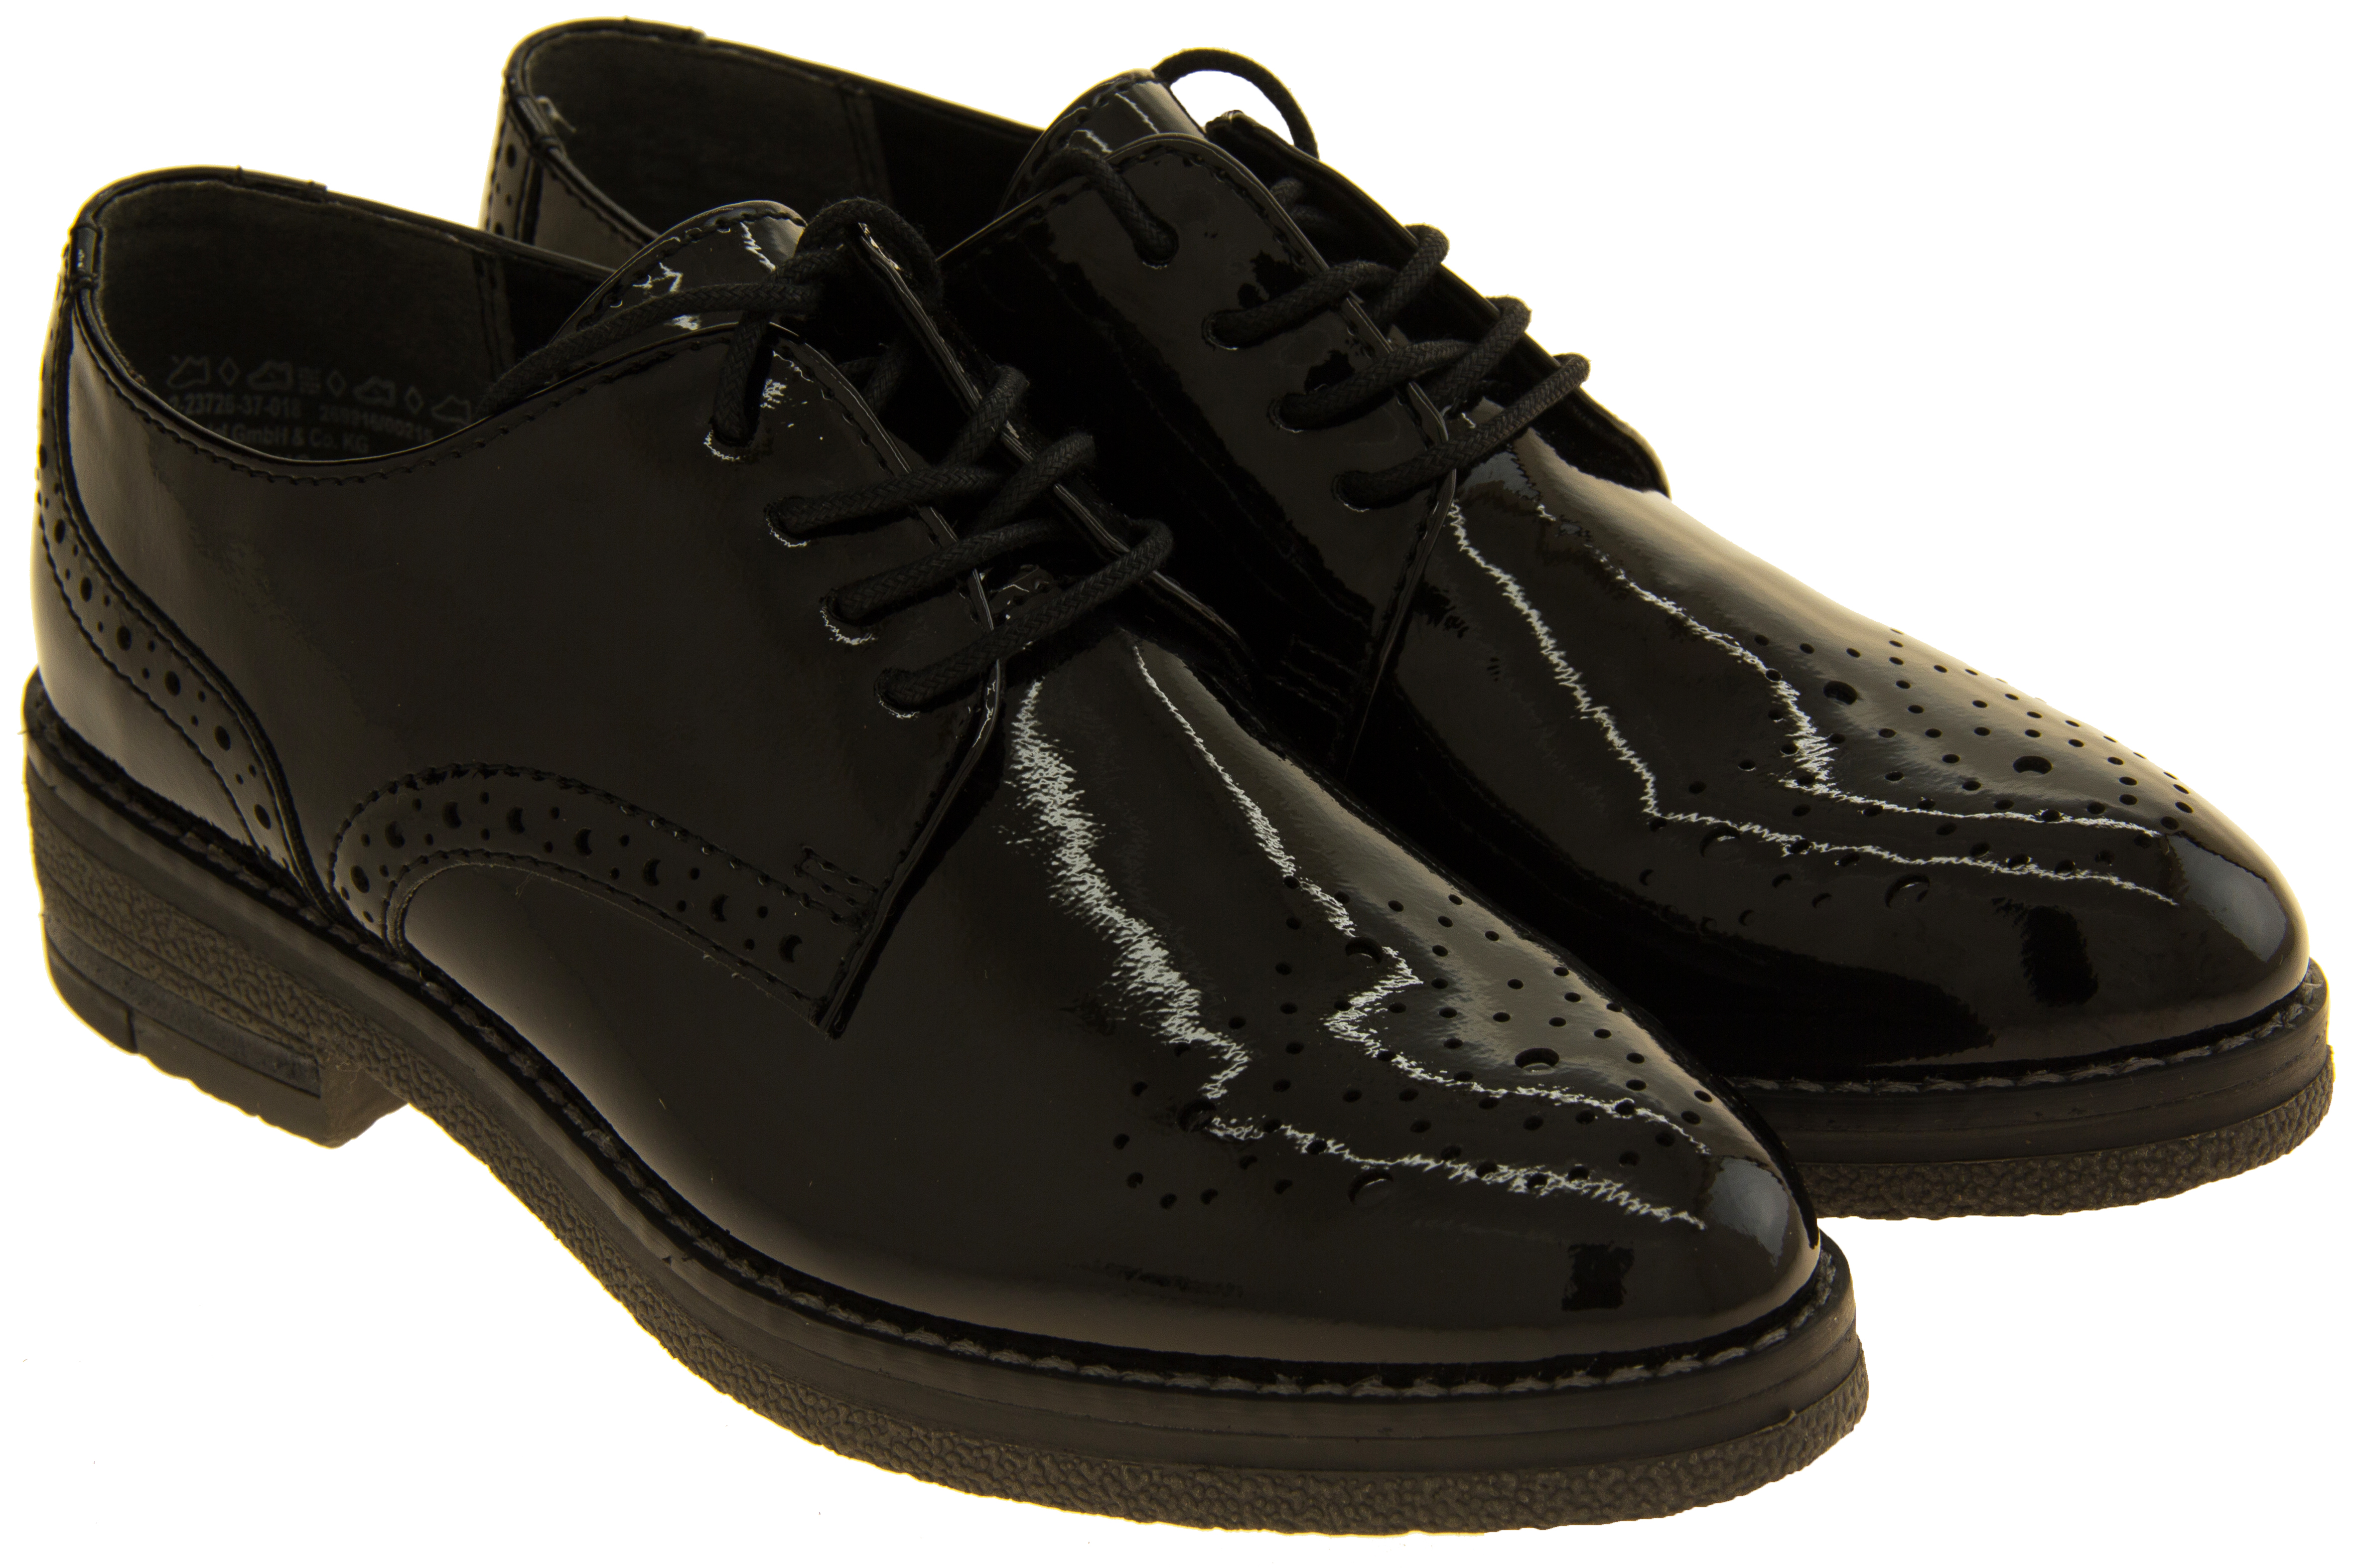 ladies marco tozzi shiny brogues womens lace up work shoes sz size 4 5 6 7 8 9 ebay. Black Bedroom Furniture Sets. Home Design Ideas